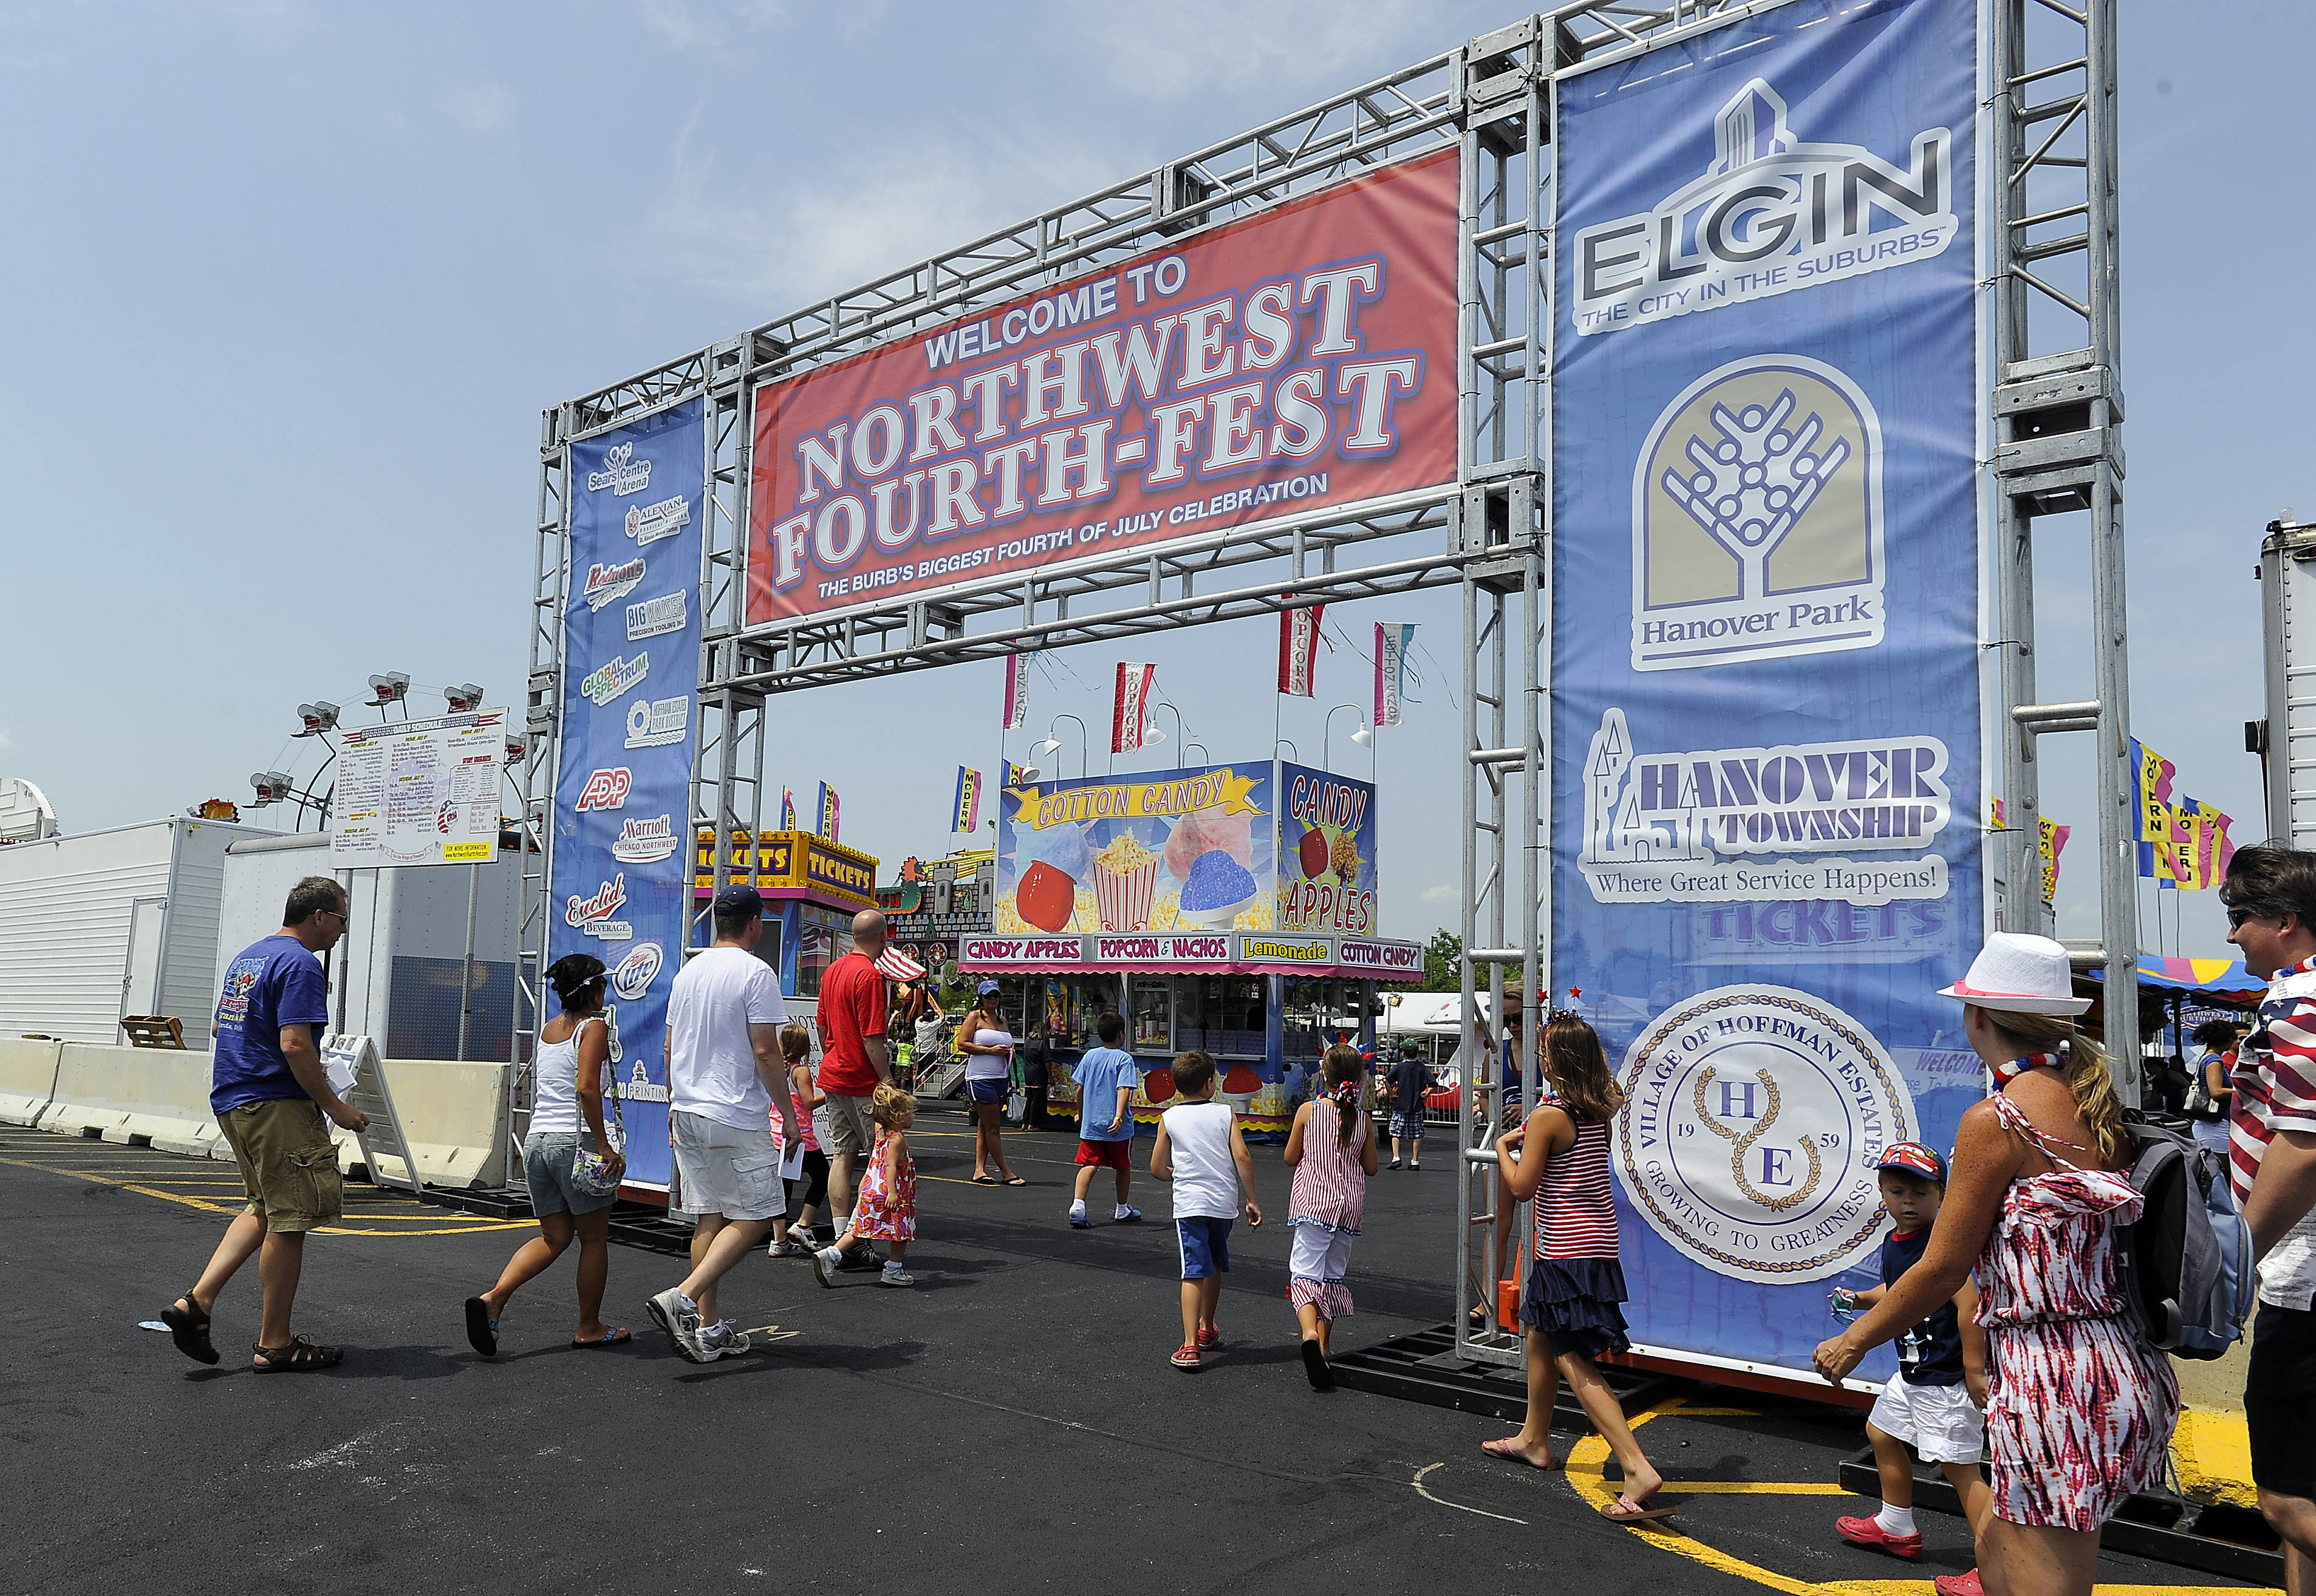 Hanover Park trustees have moved to drop out of this year's Northwest Fourth Fest, held in Hoffman Estates. Elgin already had dropped out, cutting government sponsors from four to two.